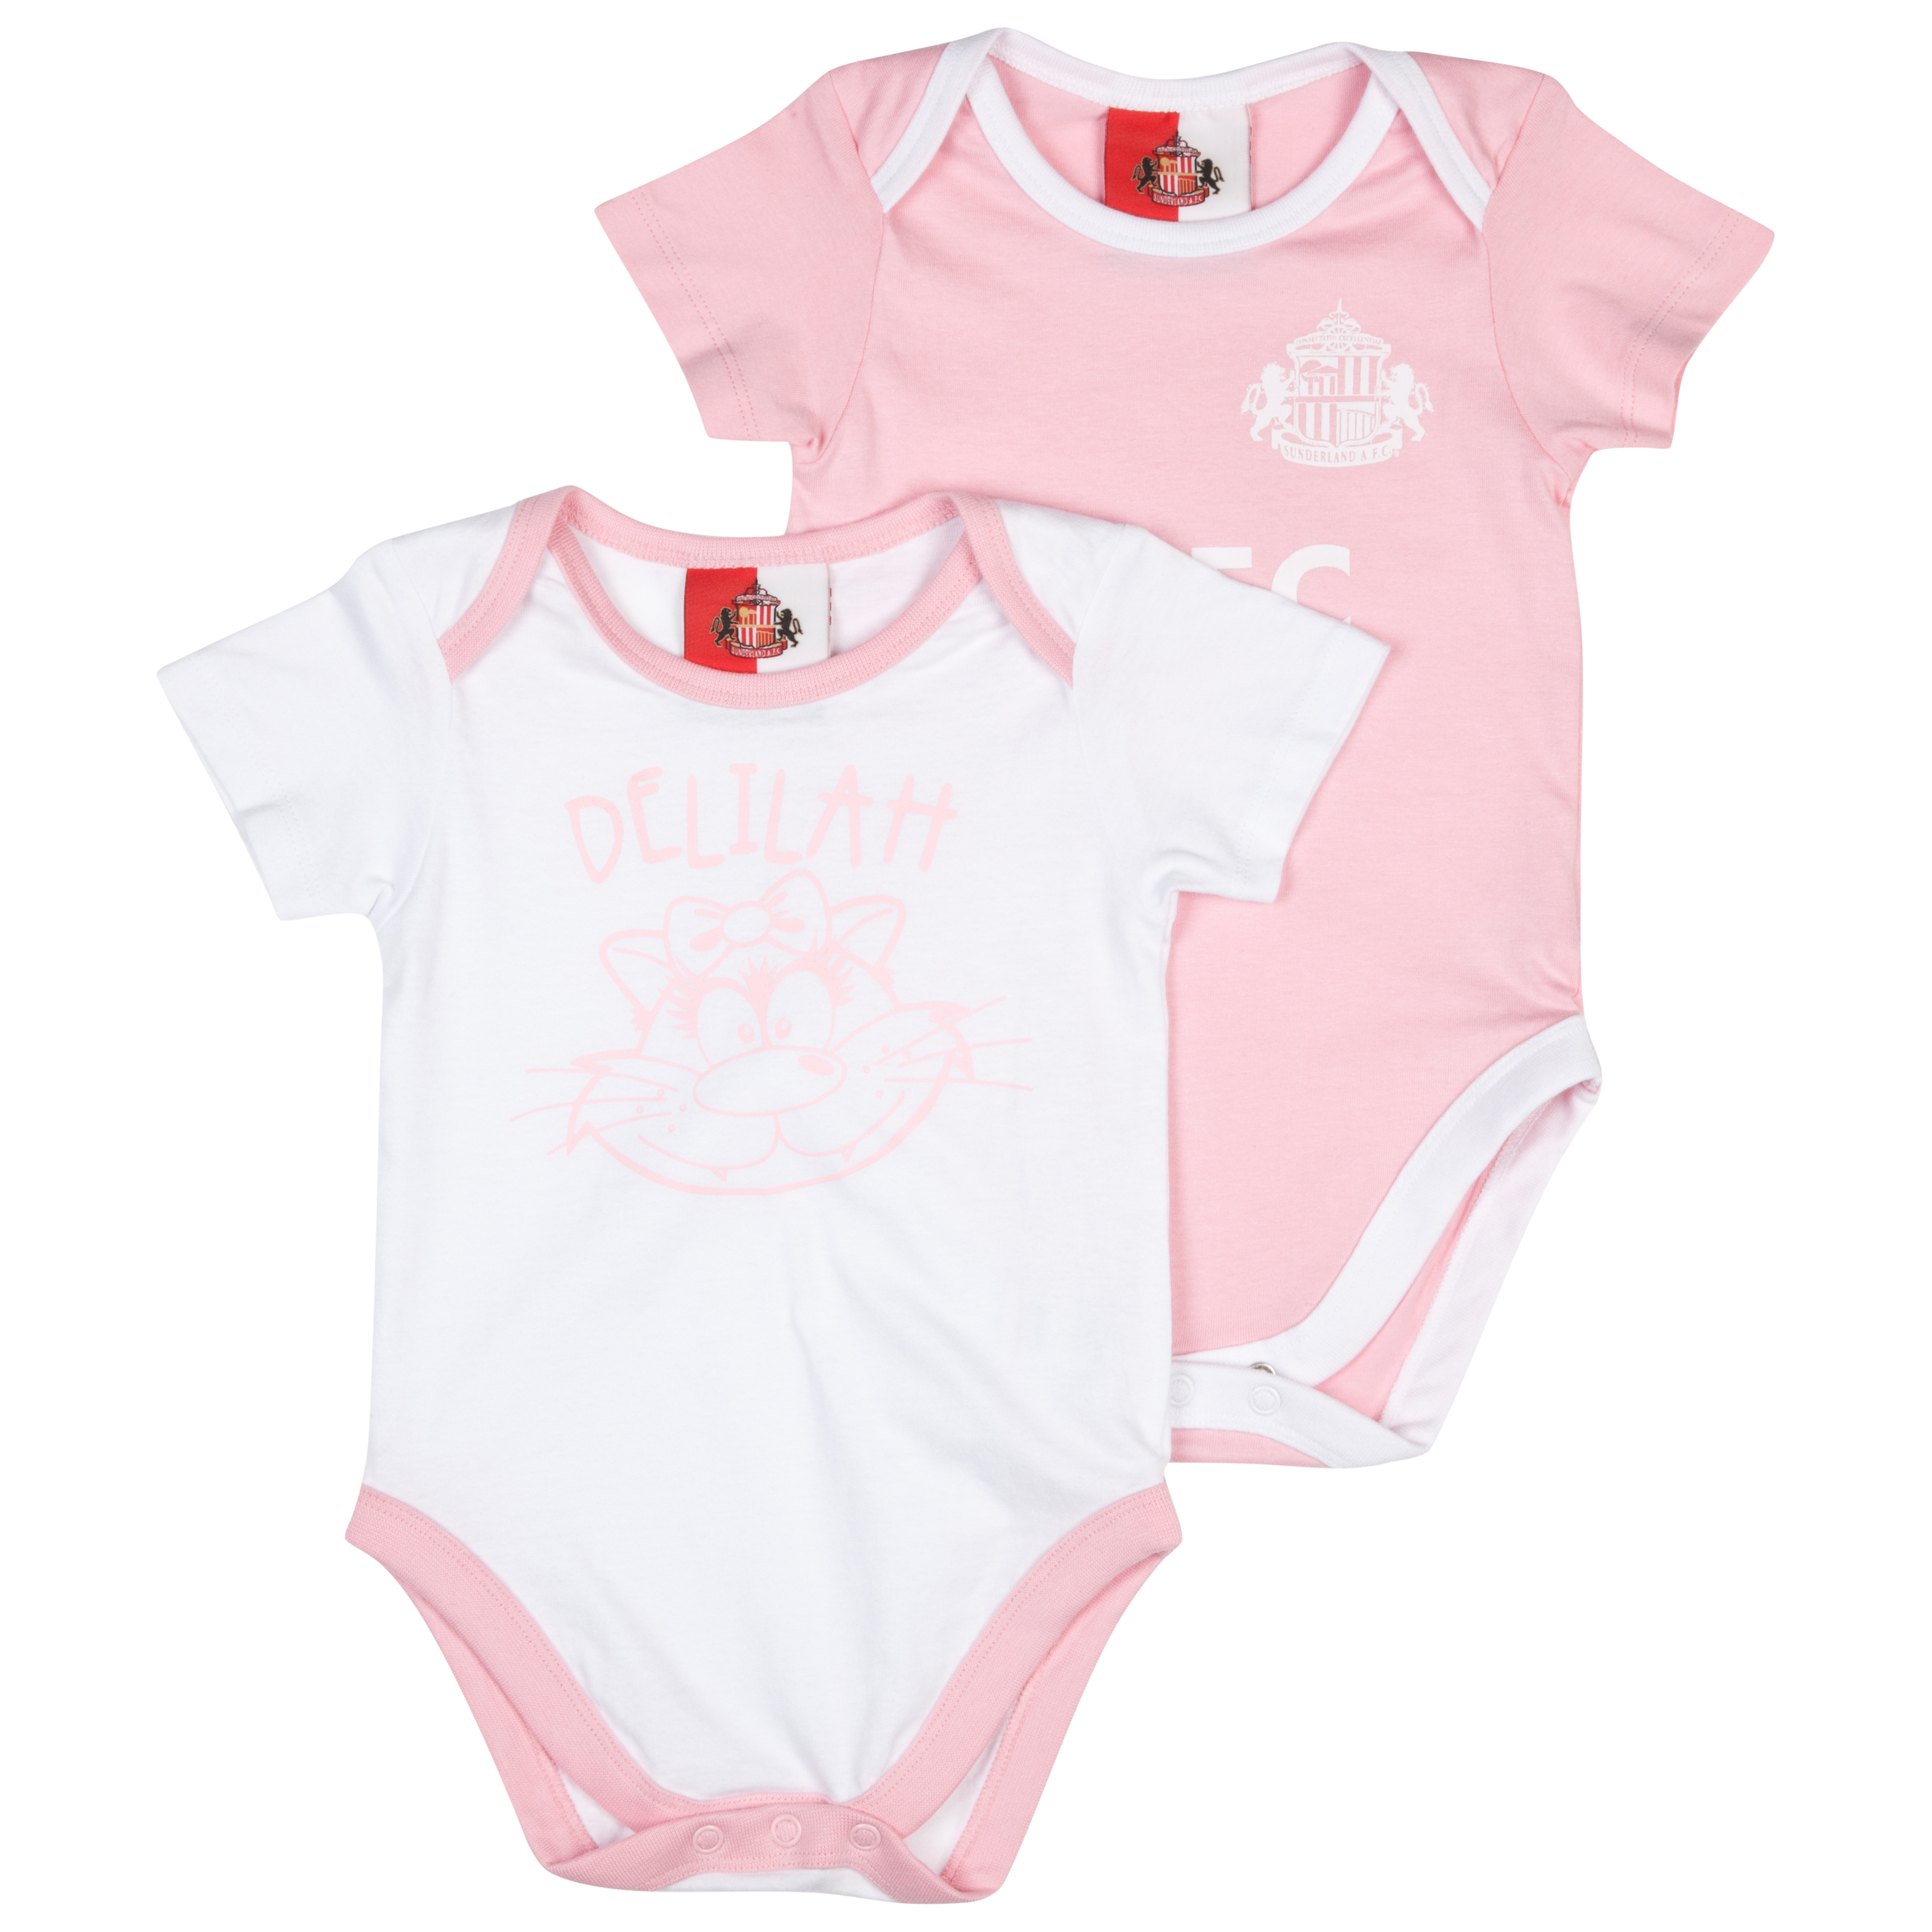 Sunderland Pack of 2 Bodysuits- Pink/White - Baby